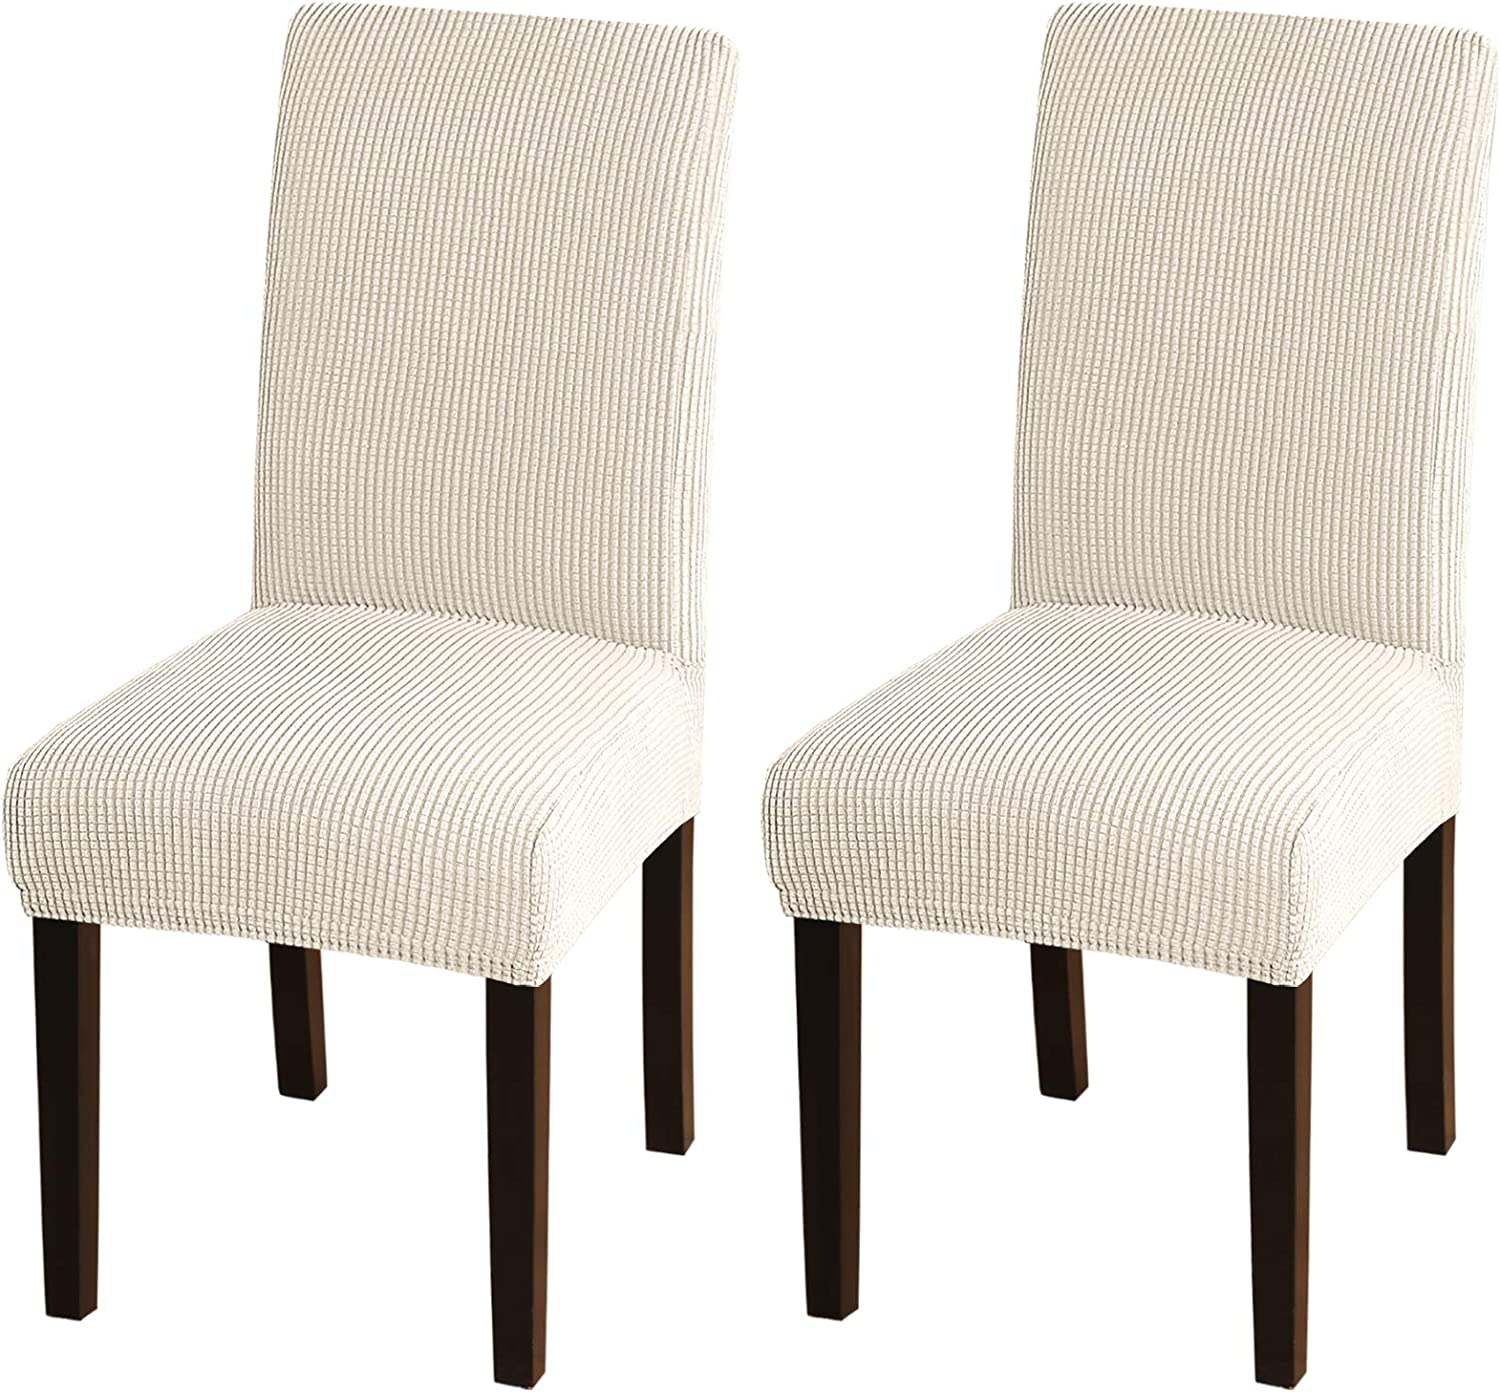 Amazon Com Turquoize Dining Room Chair Covers Stretch Chair Covers For Dining Room Set Of 2 Dining Chair Slipcover Parsons Kitchen Chair Covers Removable Chair Protector Covers For Dining Room 2 Biscotti Beige Home